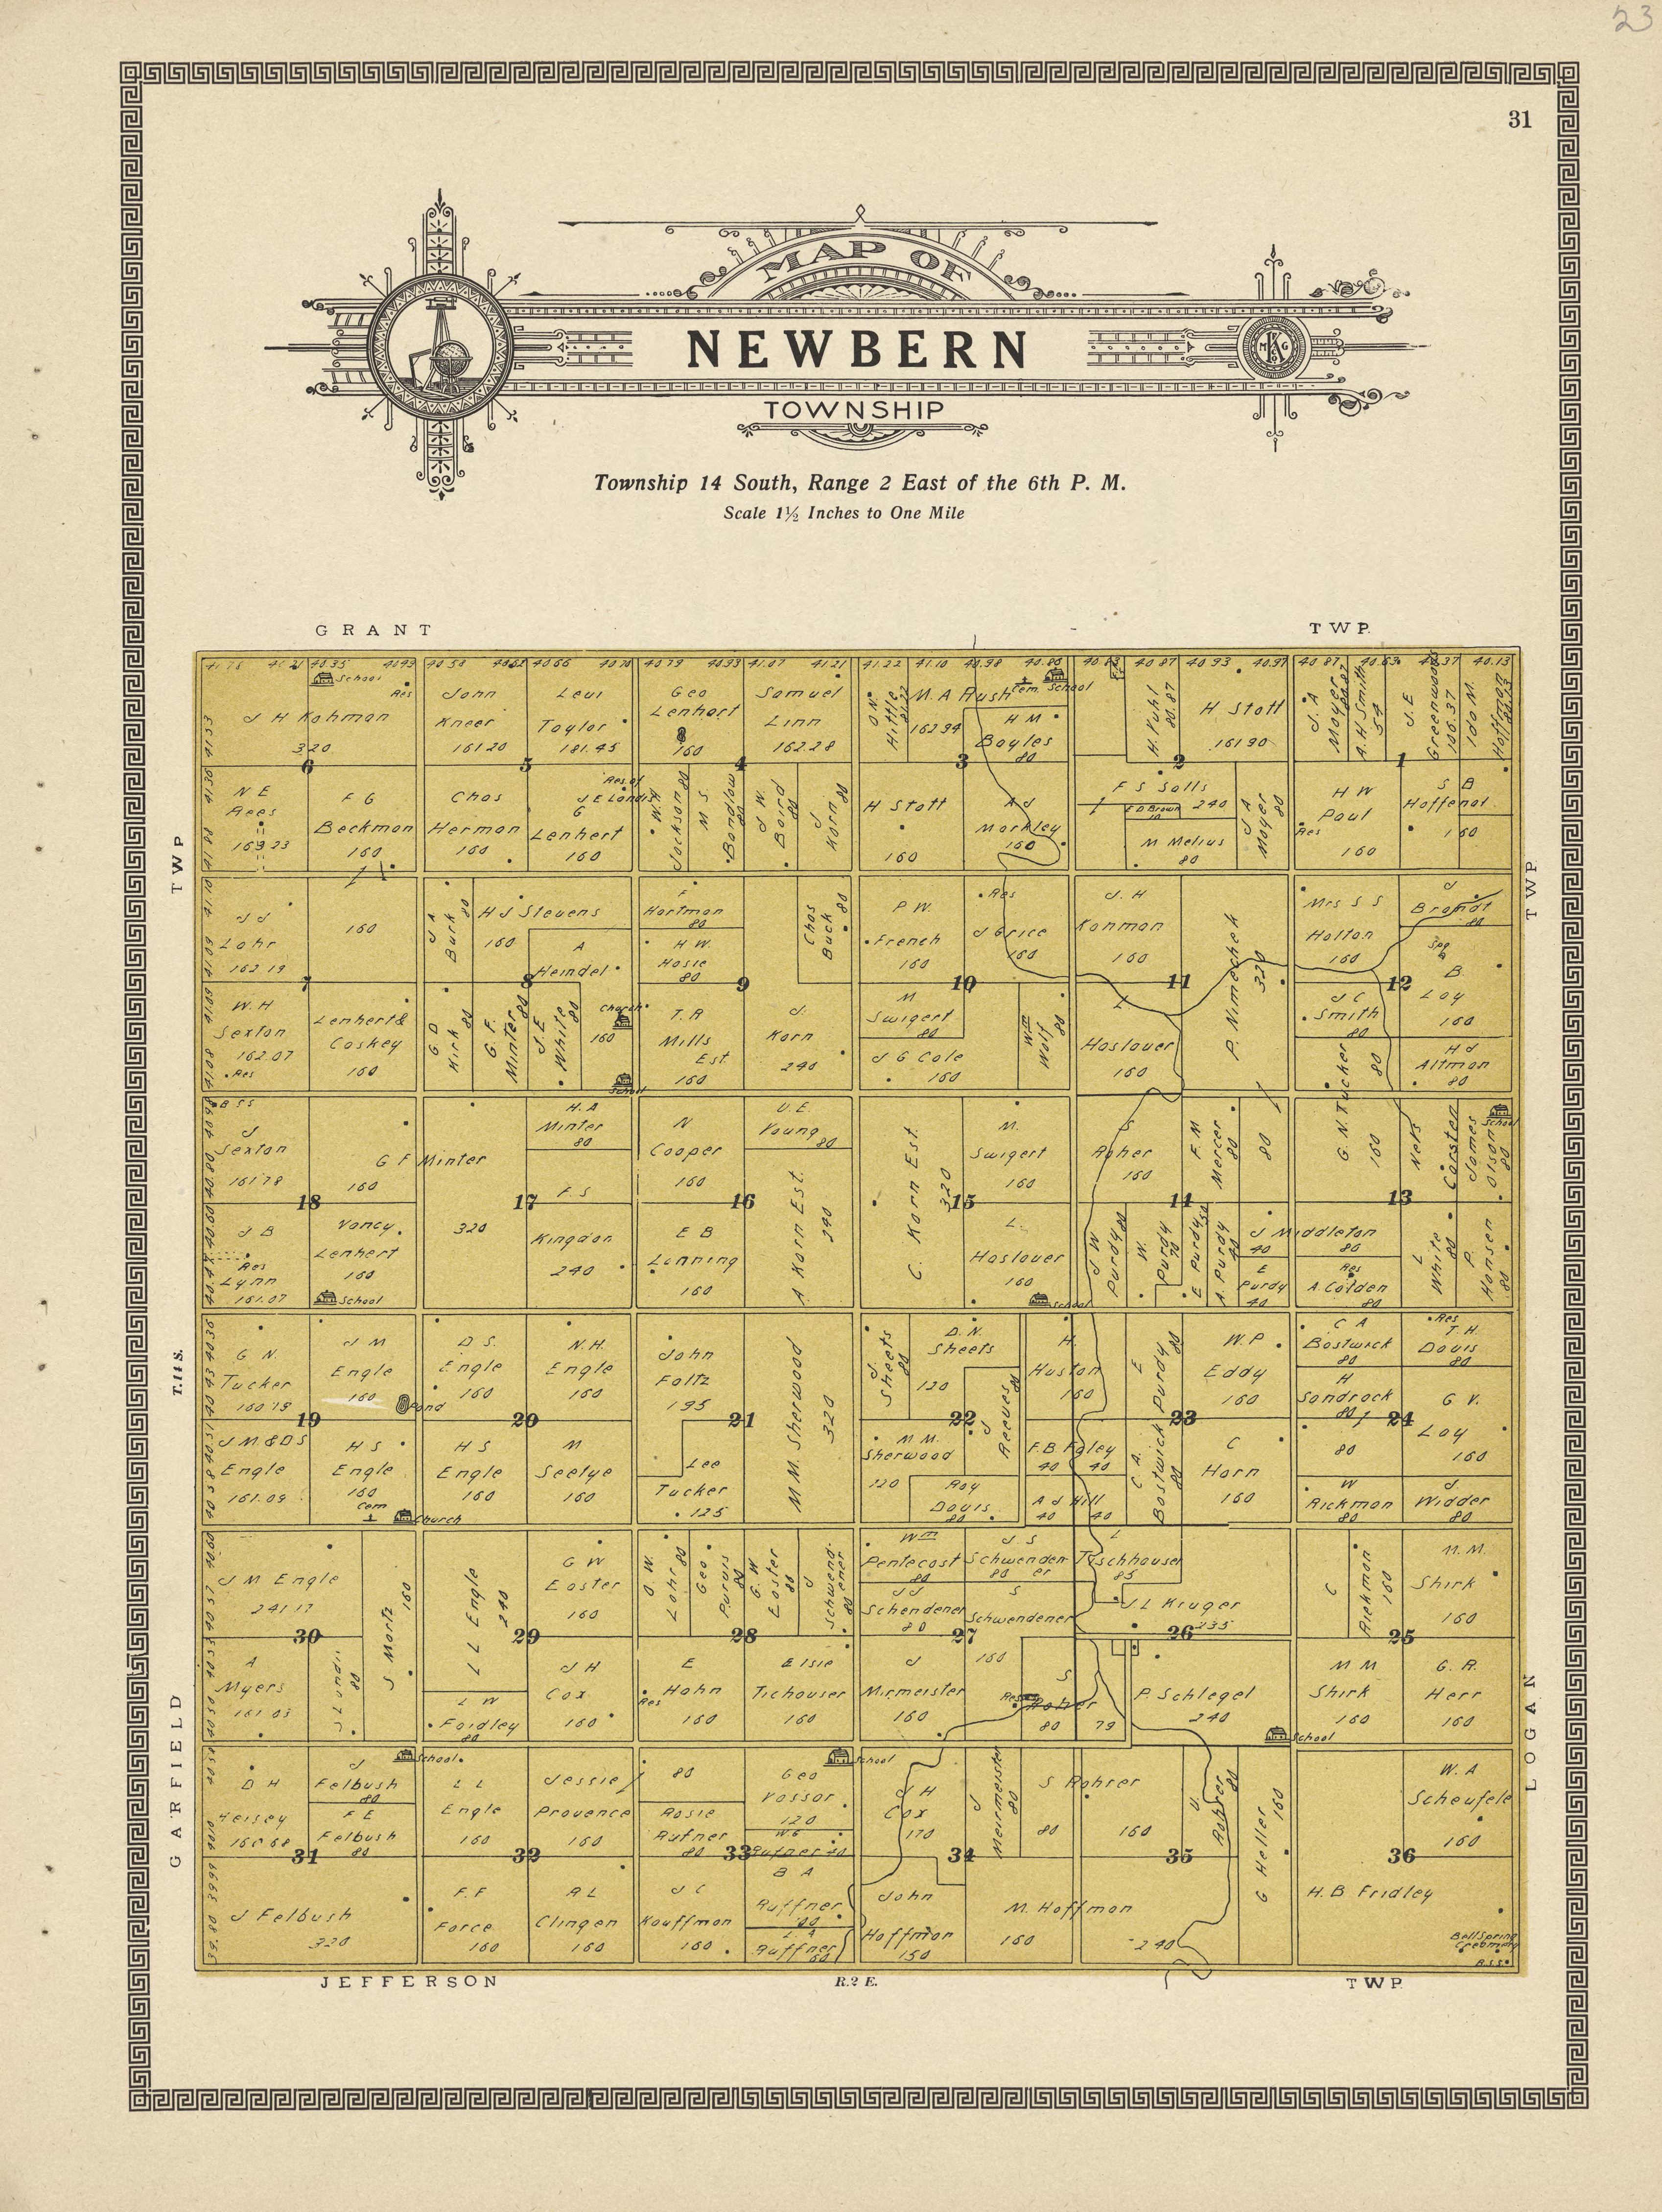 File:Plat book and complete survey of inson County, Kansas ... on nebraska map, herington kansas map, kansas road map, kansas us map, tennessee state map, kansas counties map, colorado map, kansas lakes map, usa map, oklahoma map, printable kansas map, missouri map, kansas elevation map, colby kansas map, arkansas map, kansas small town map, kansas map with all cities, the state map, united states map, kansas interstate map,